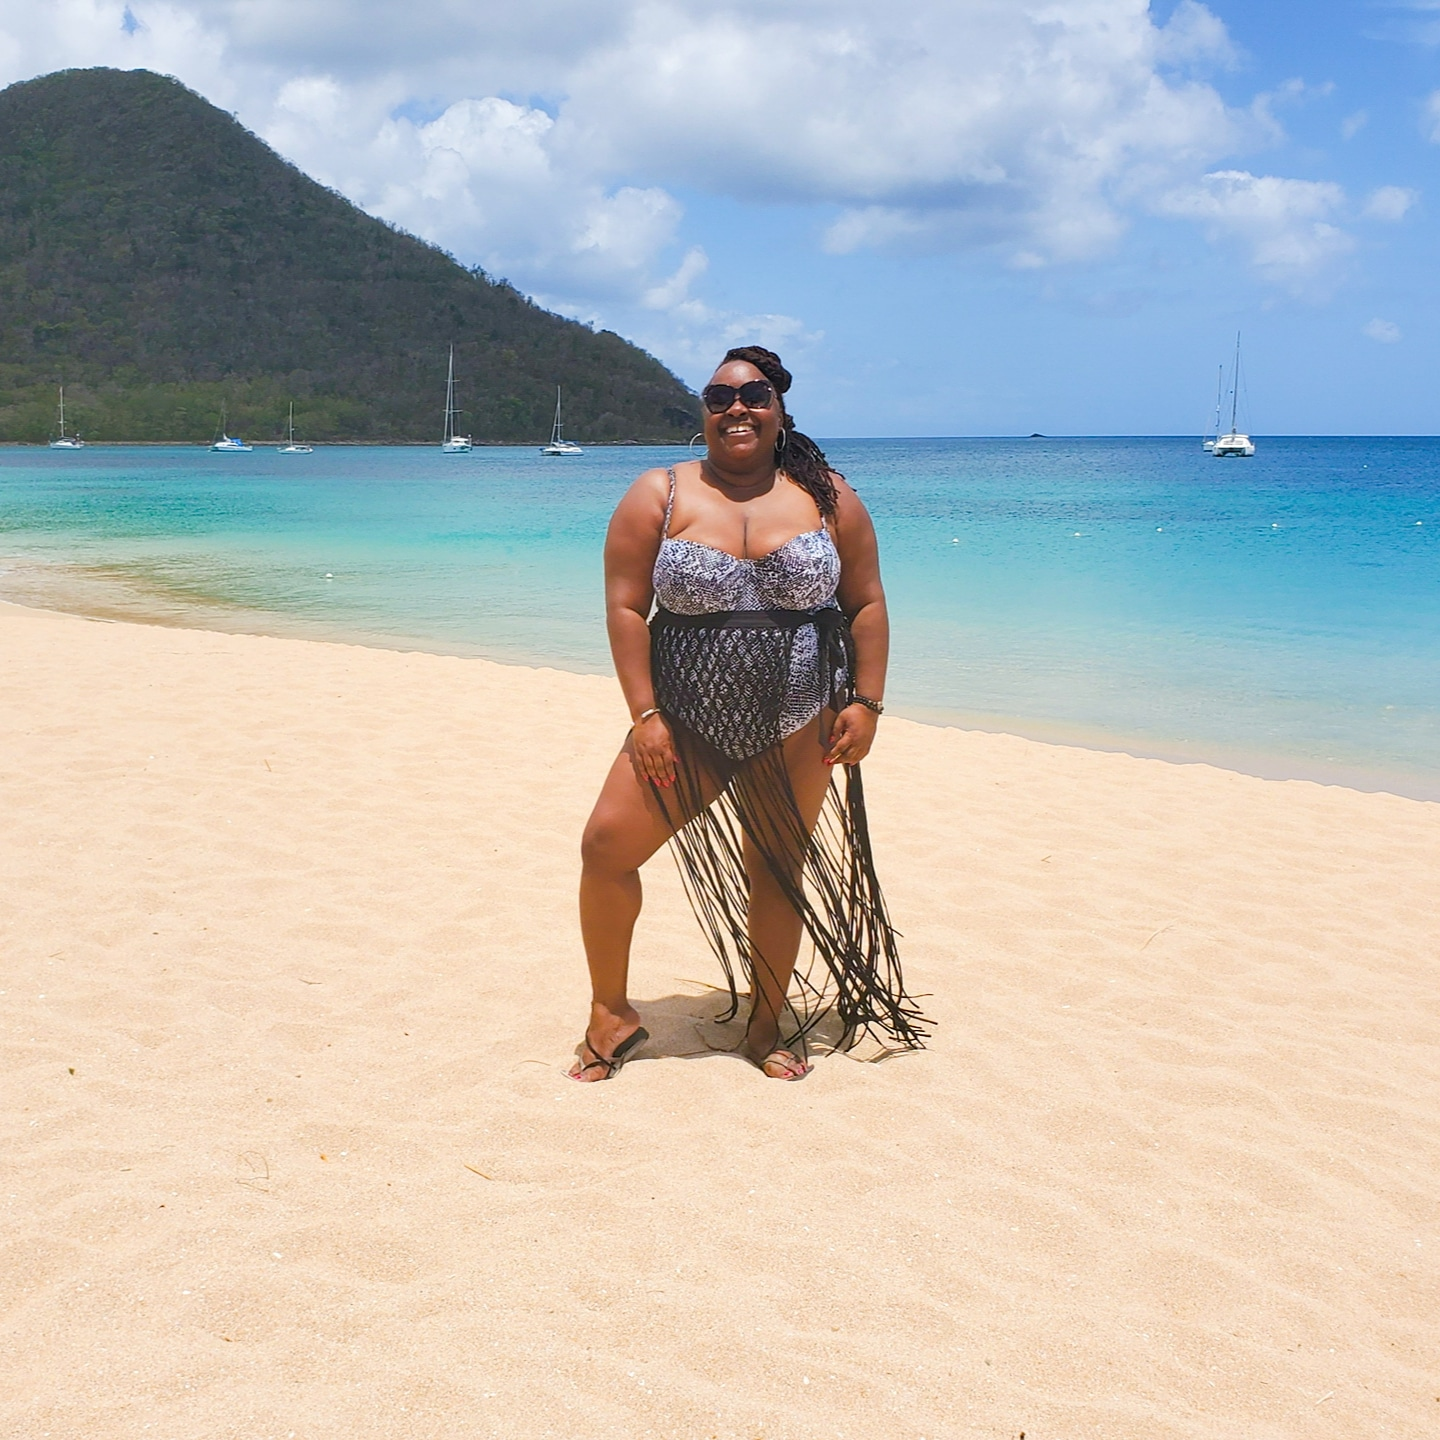 Swimsuit: Asos    Sarong: Forever 21